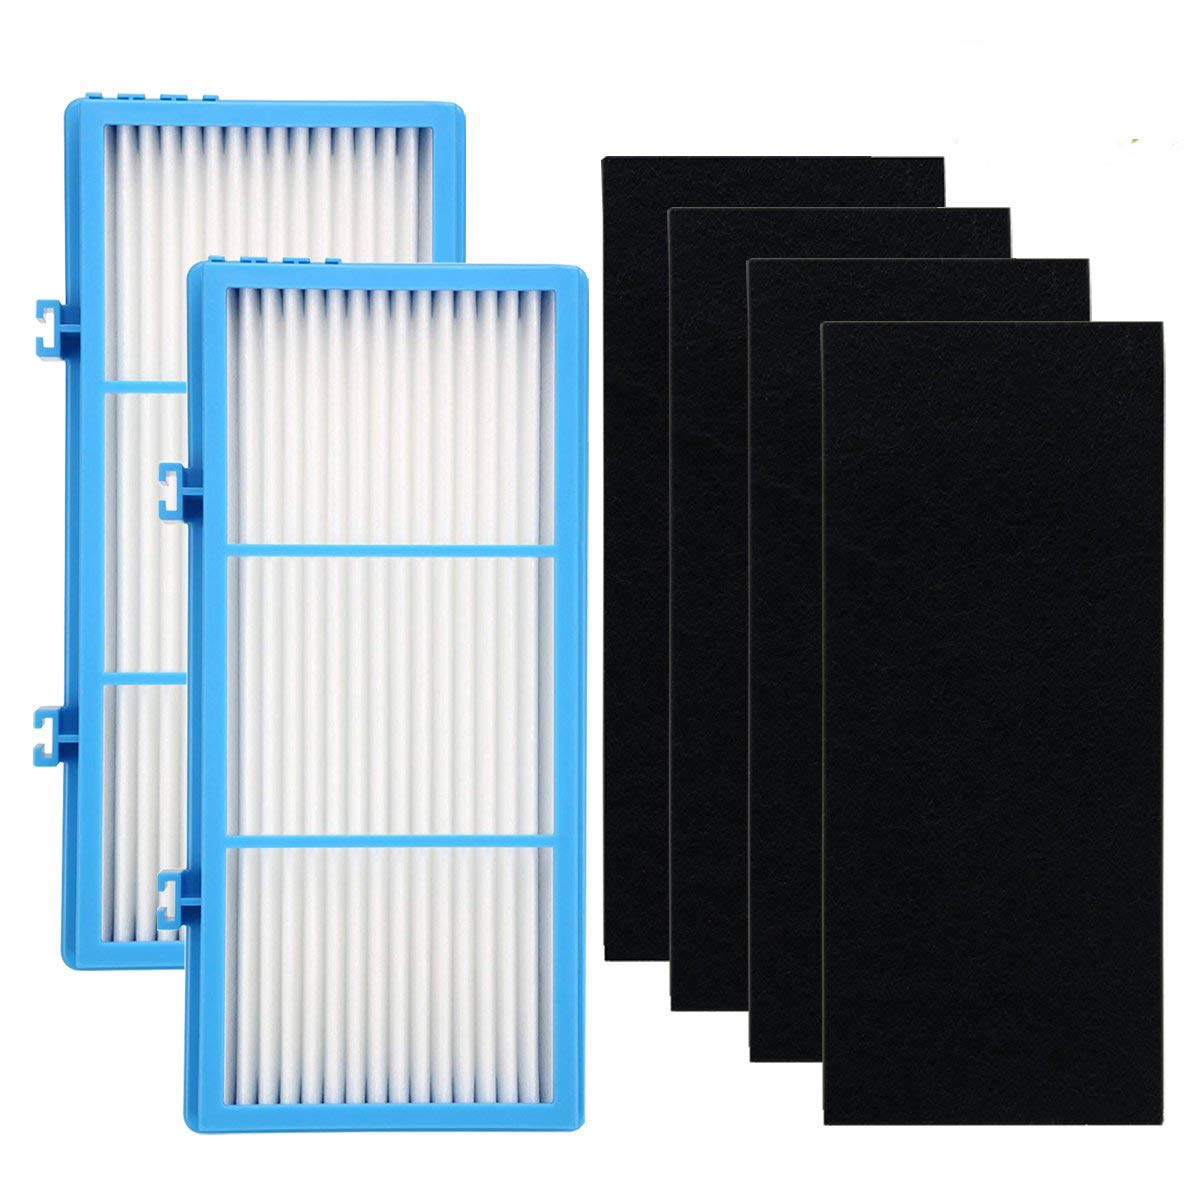 Leacheery 2 Pack Replacement Filter for Holmes Hepa Type Total Air Filter, HAPF30AT Holmes Air Purifier Filter AER1 Series and 4 Pack Replacement Carbon Booster Filte for Holmes Total Air Purifier